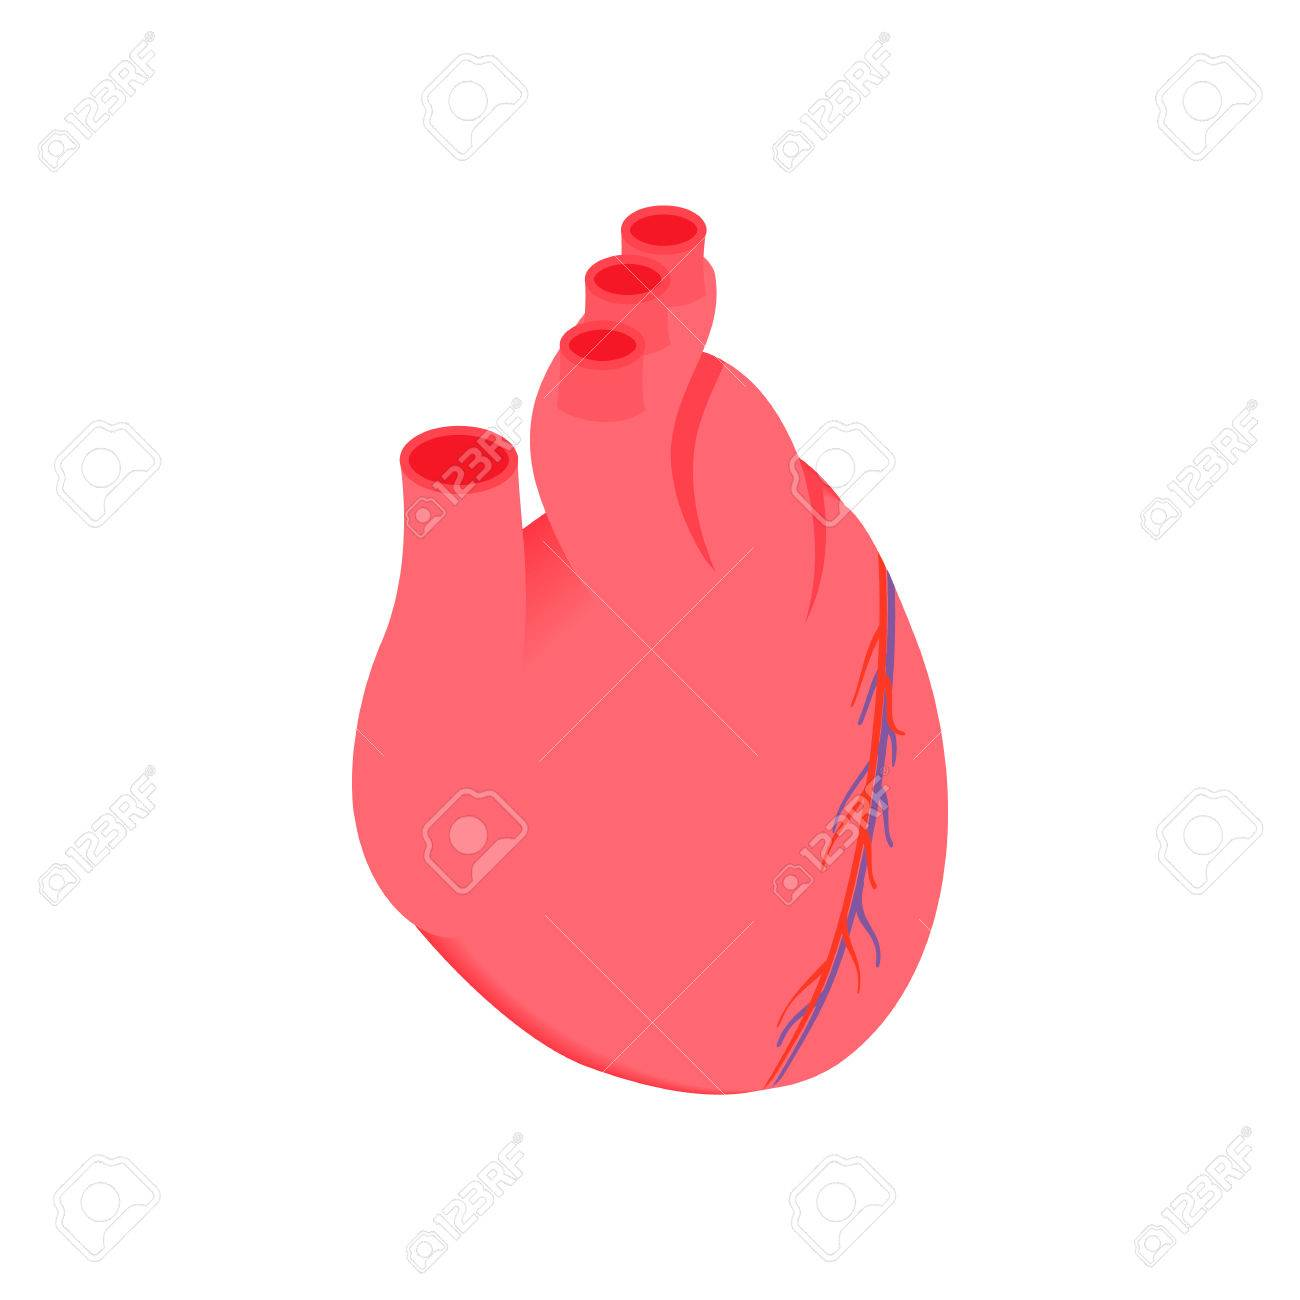 Anatomical Heart Isometric 3d Icon Pink Symbol On A White